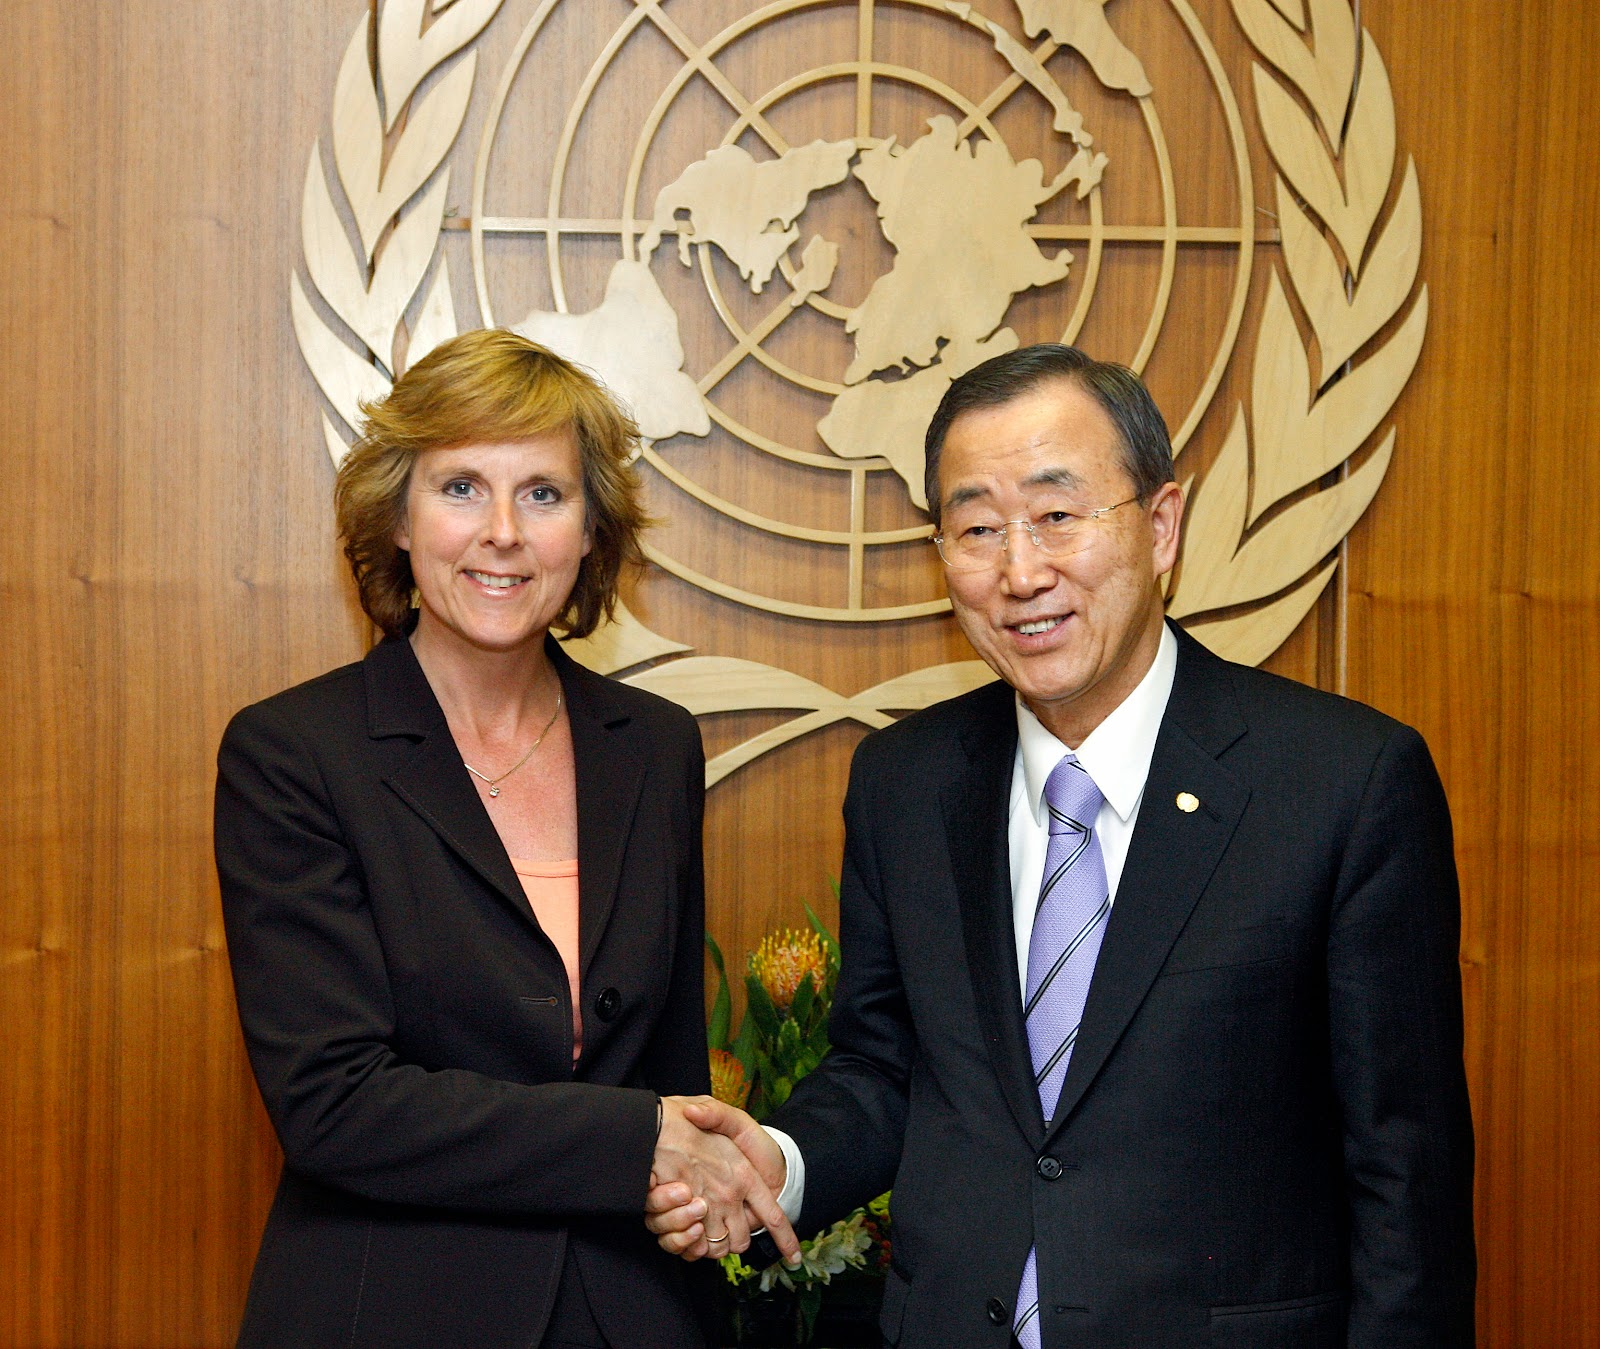 UN: Ban Ki Moon & Connie Hedegaard.